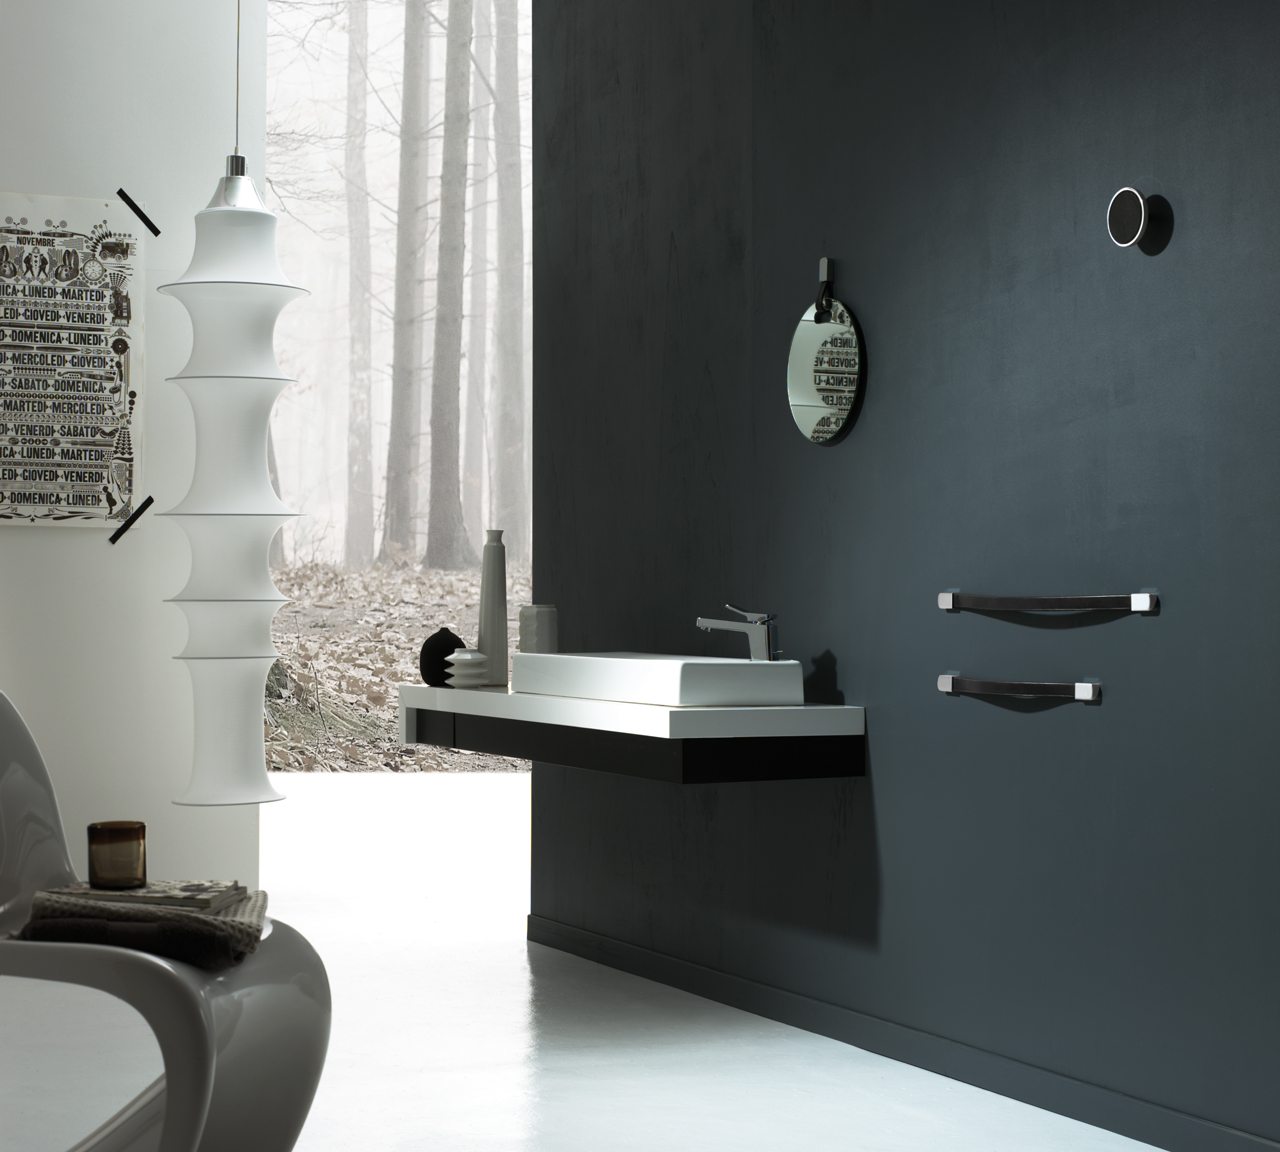 Alcofer srl ferramenta a verona for Design accessori bagno